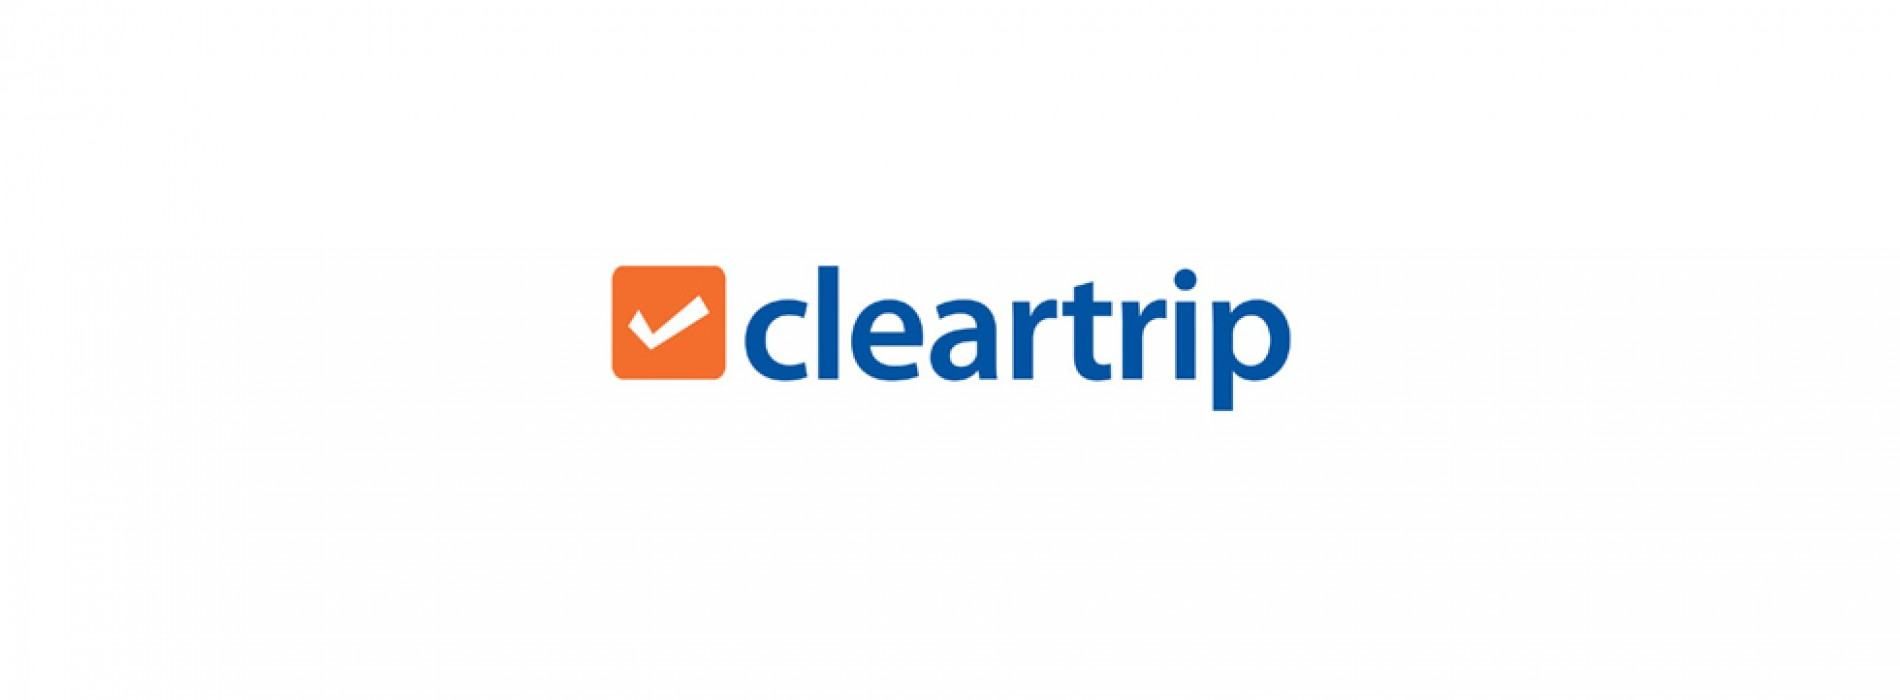 Cleartrip Local launches the Magic Finder feature to enable travellers to search, discover and book exciting activities